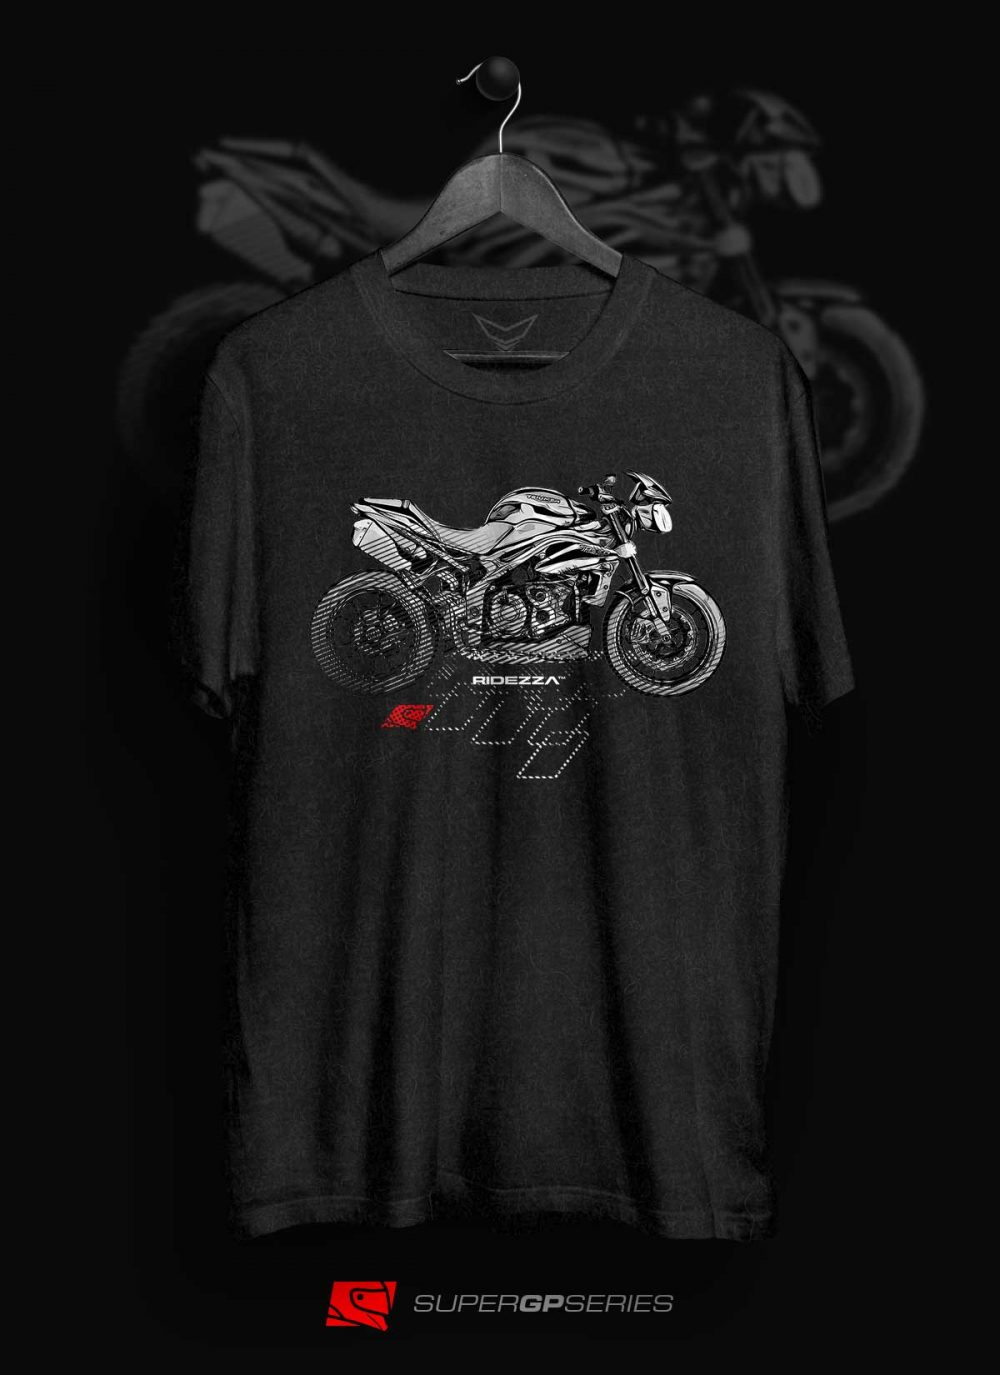 Ridezza Speed Triple SuperGP Series T-Shirt